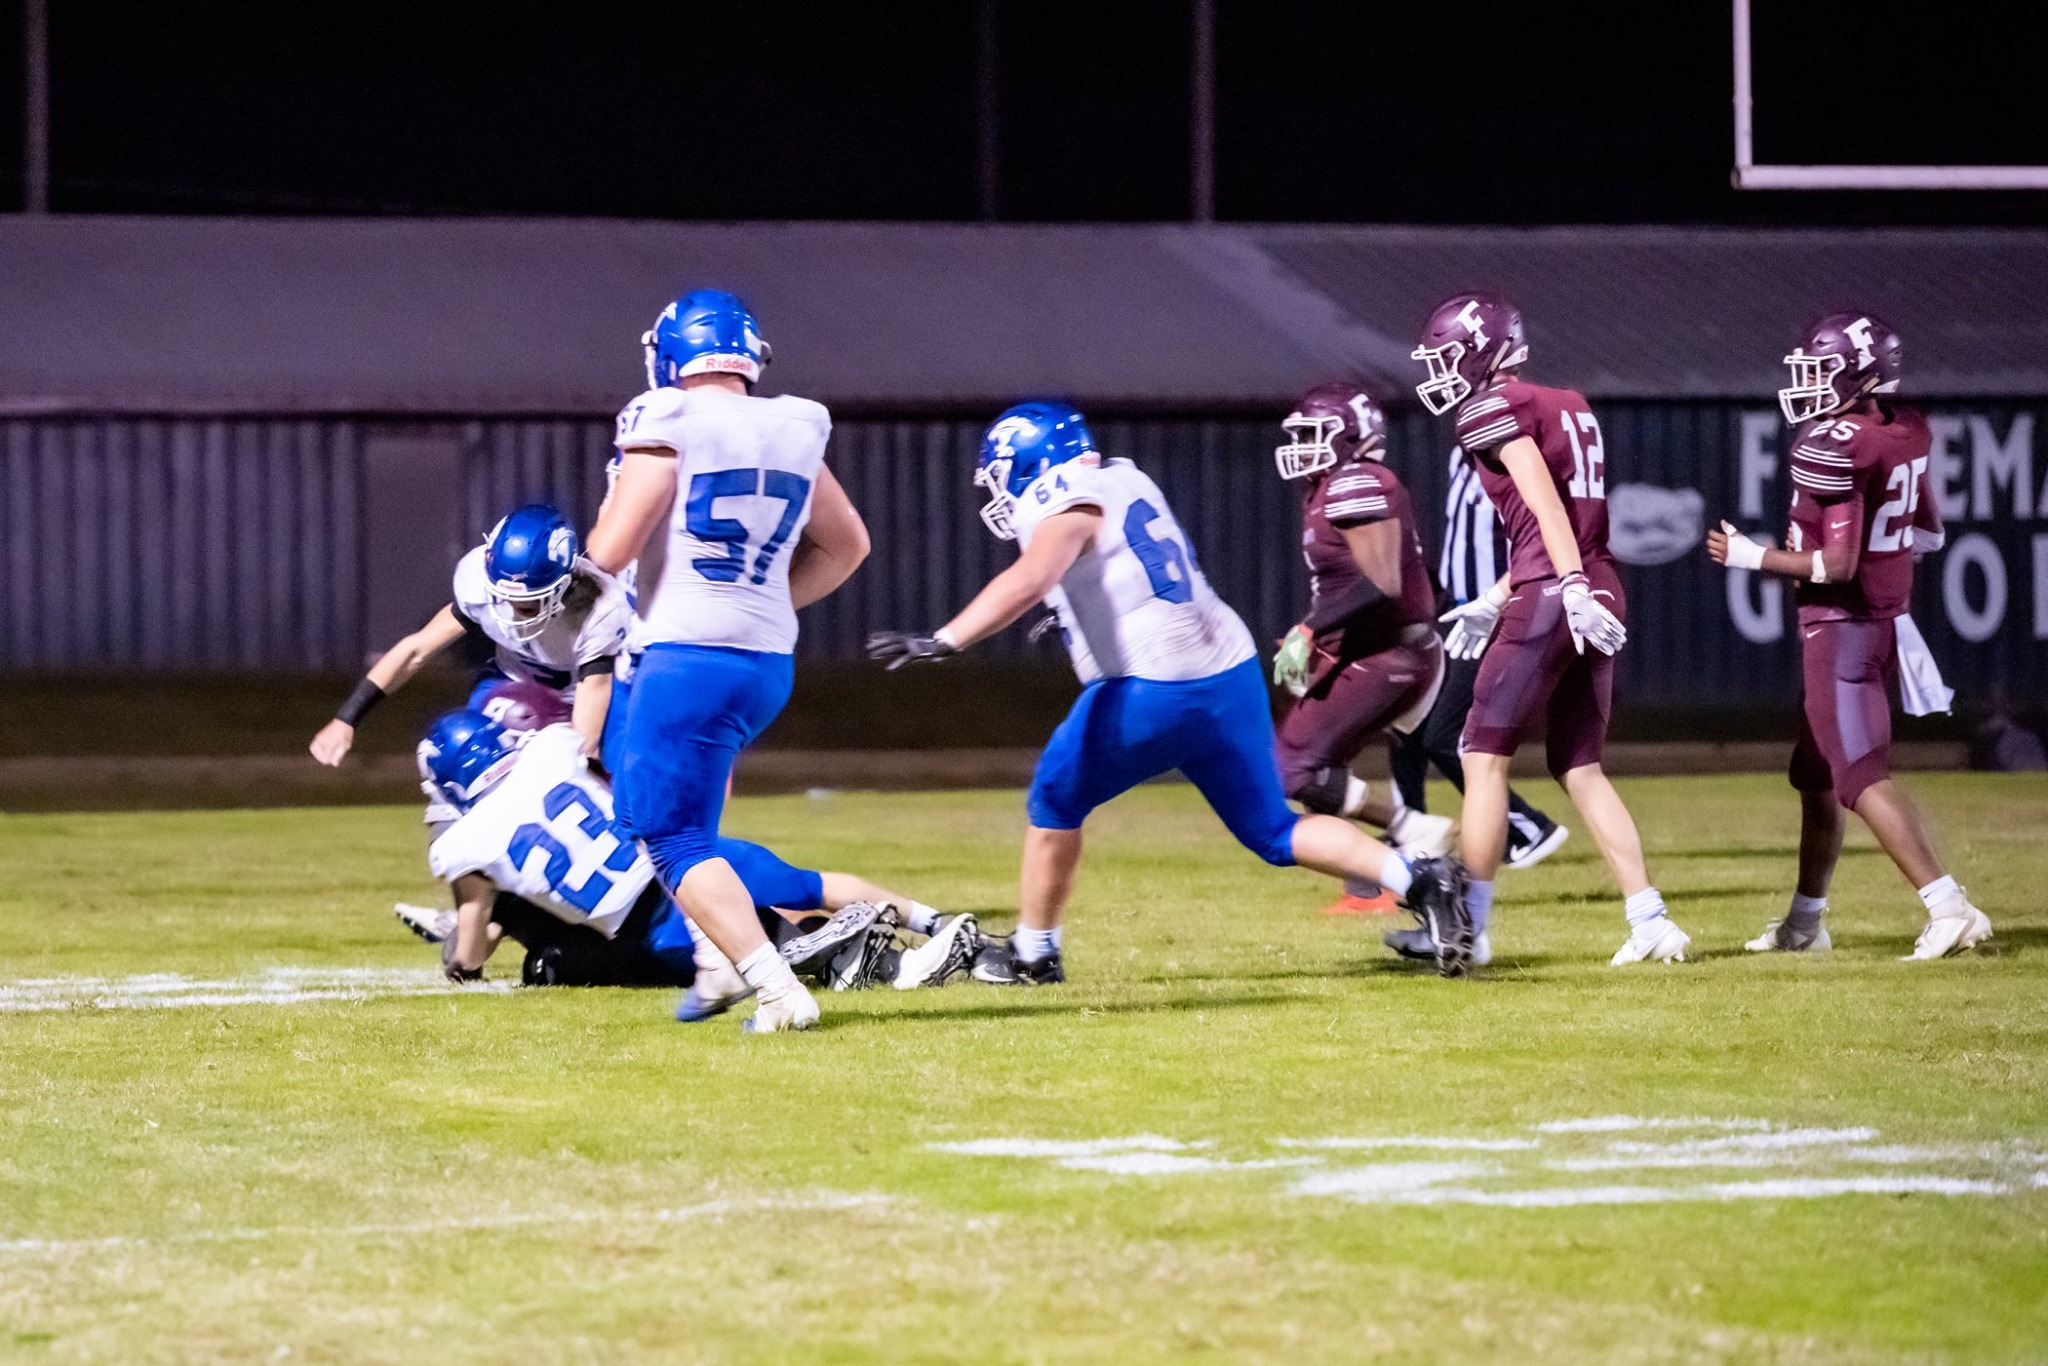 Tackle for Loss